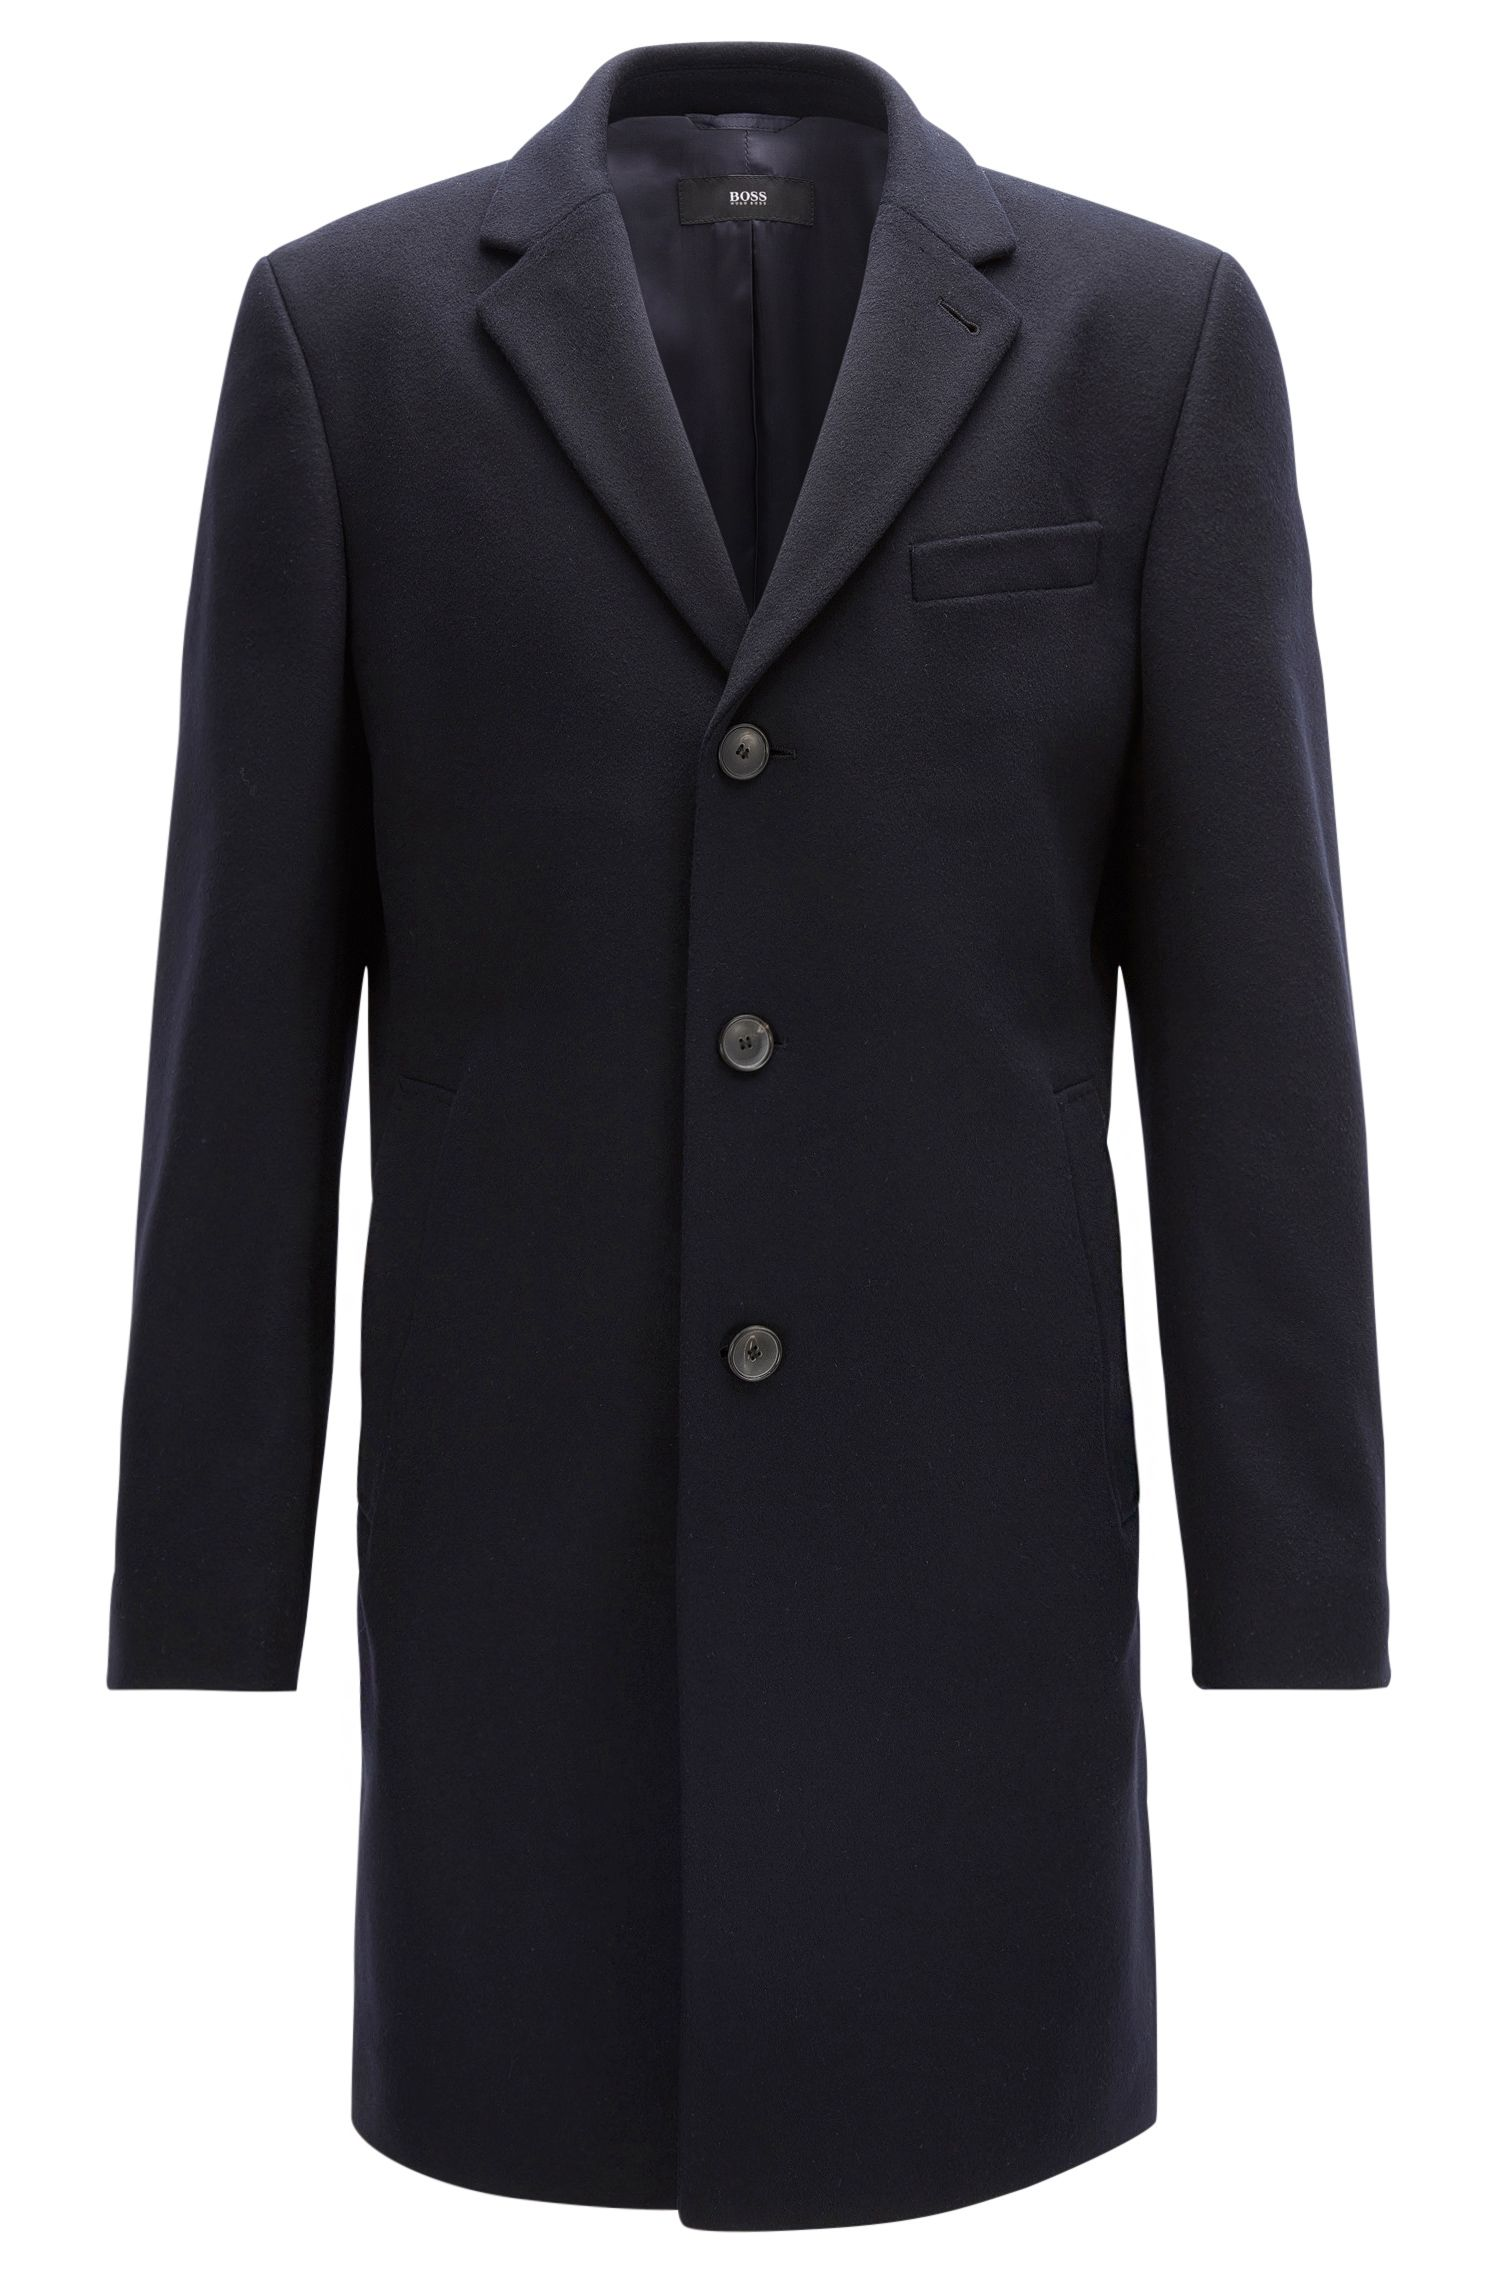 Wool-blend coat in a slim fit